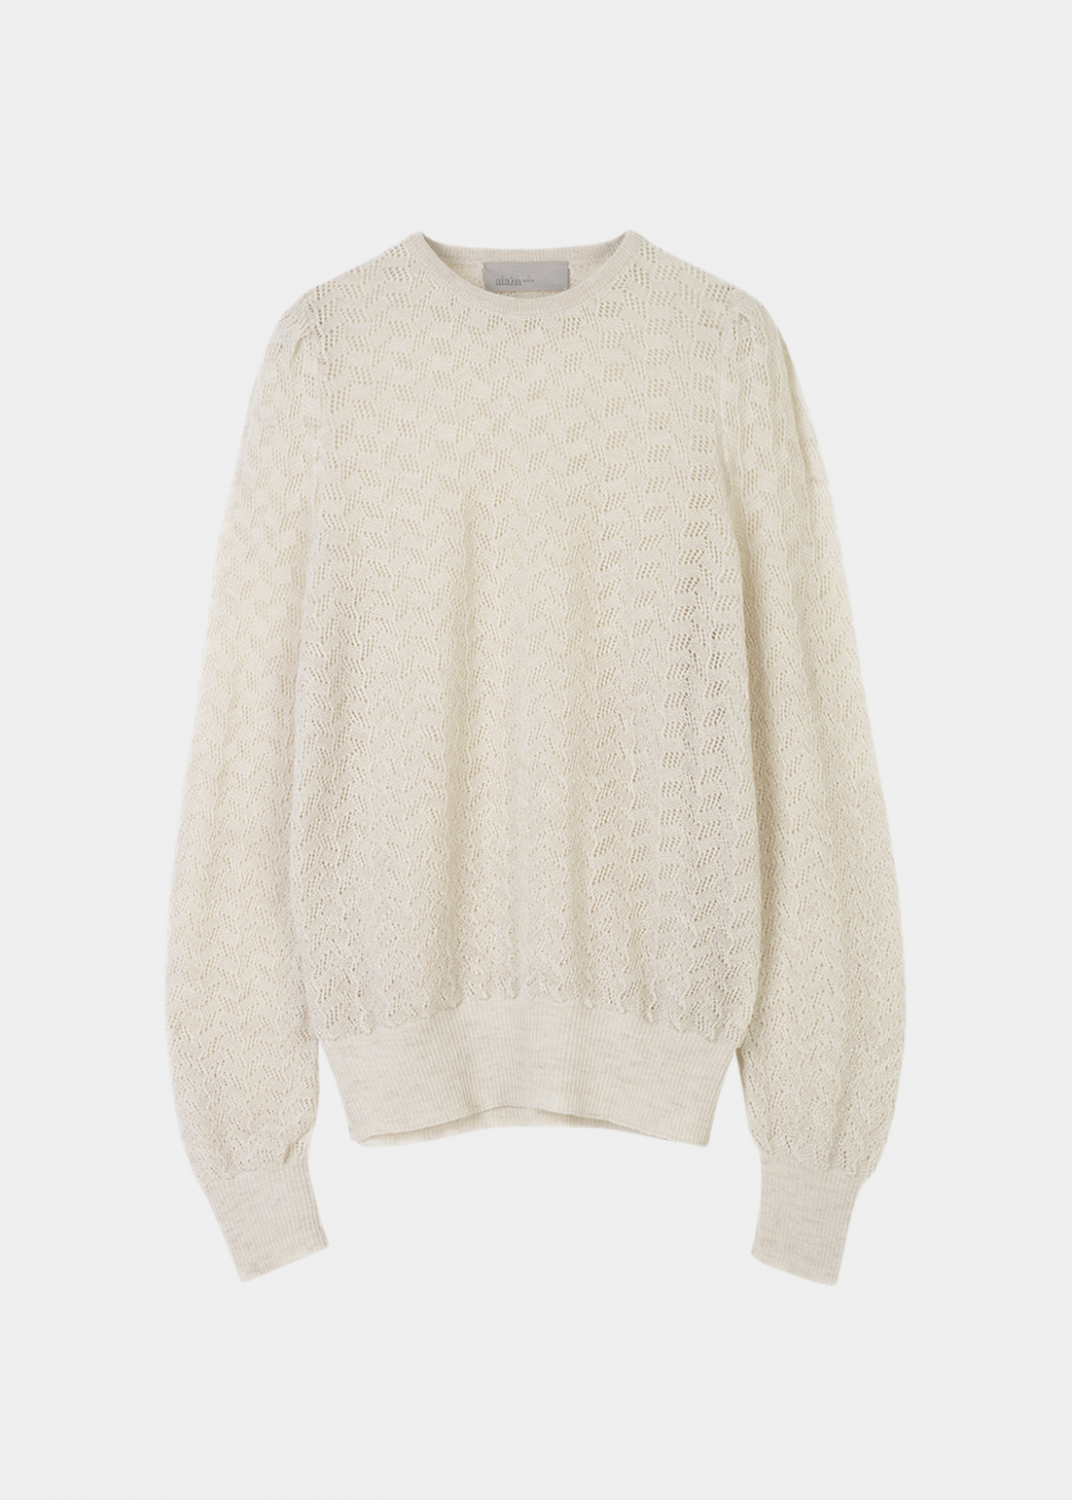 Knits - Shapiro Knit Blouse